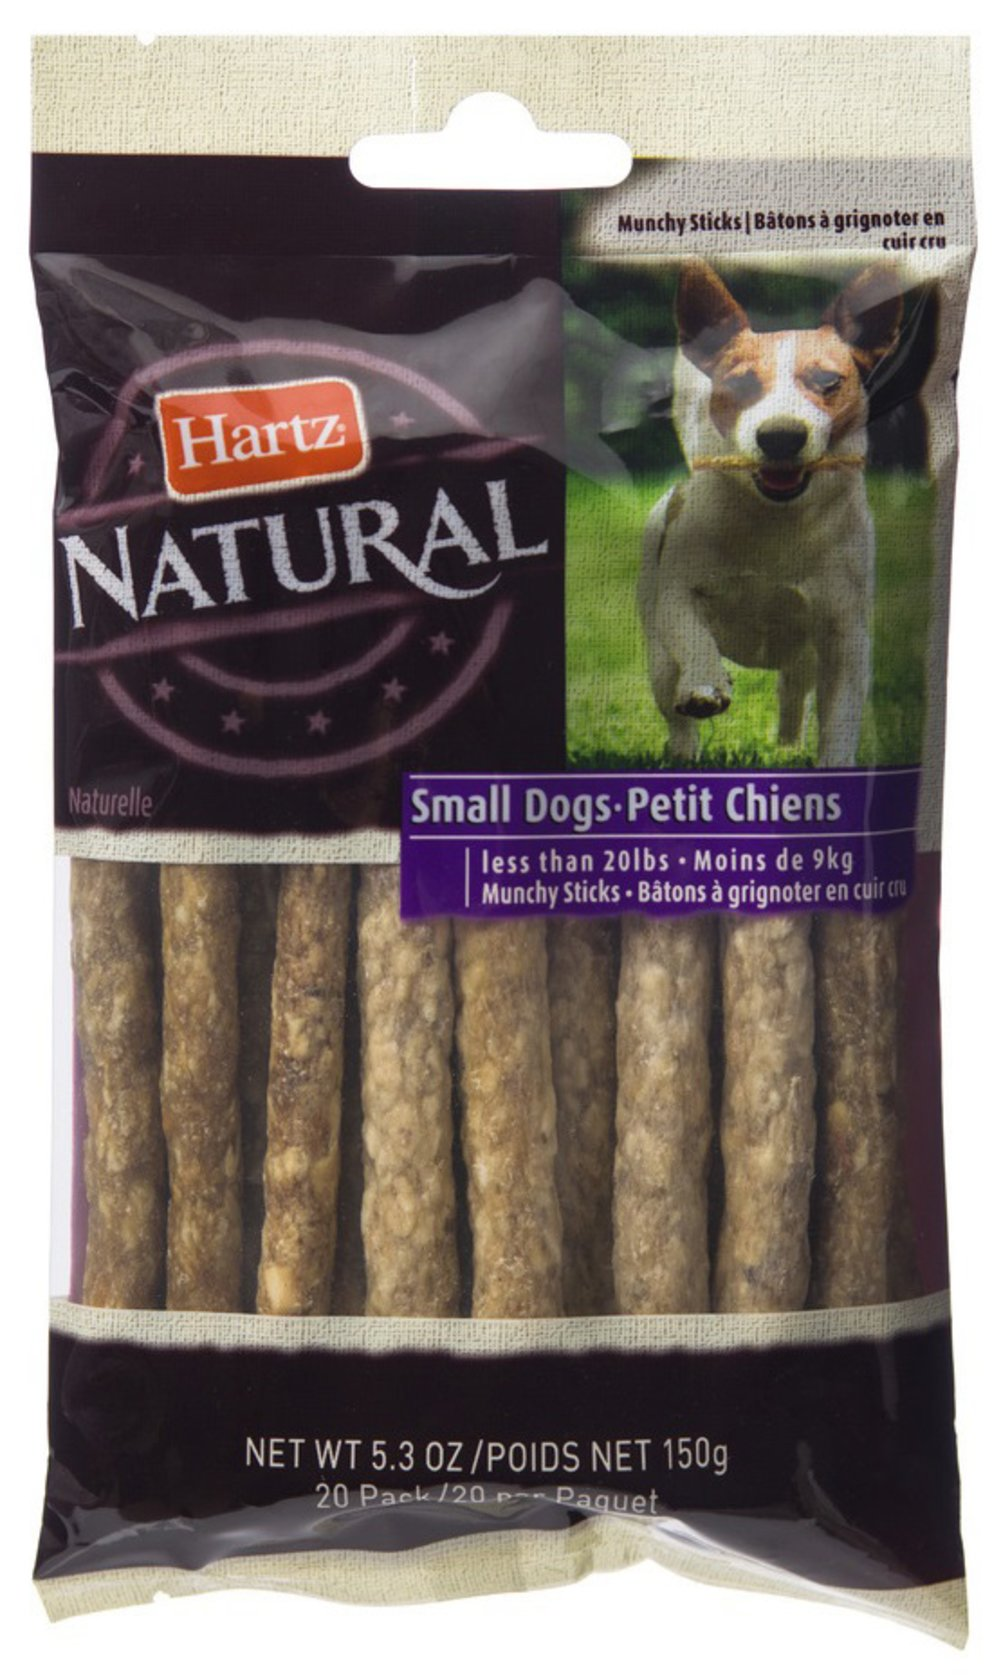 Rawhide Natural Sticks for Small Dogs  20 Pack  $4.49